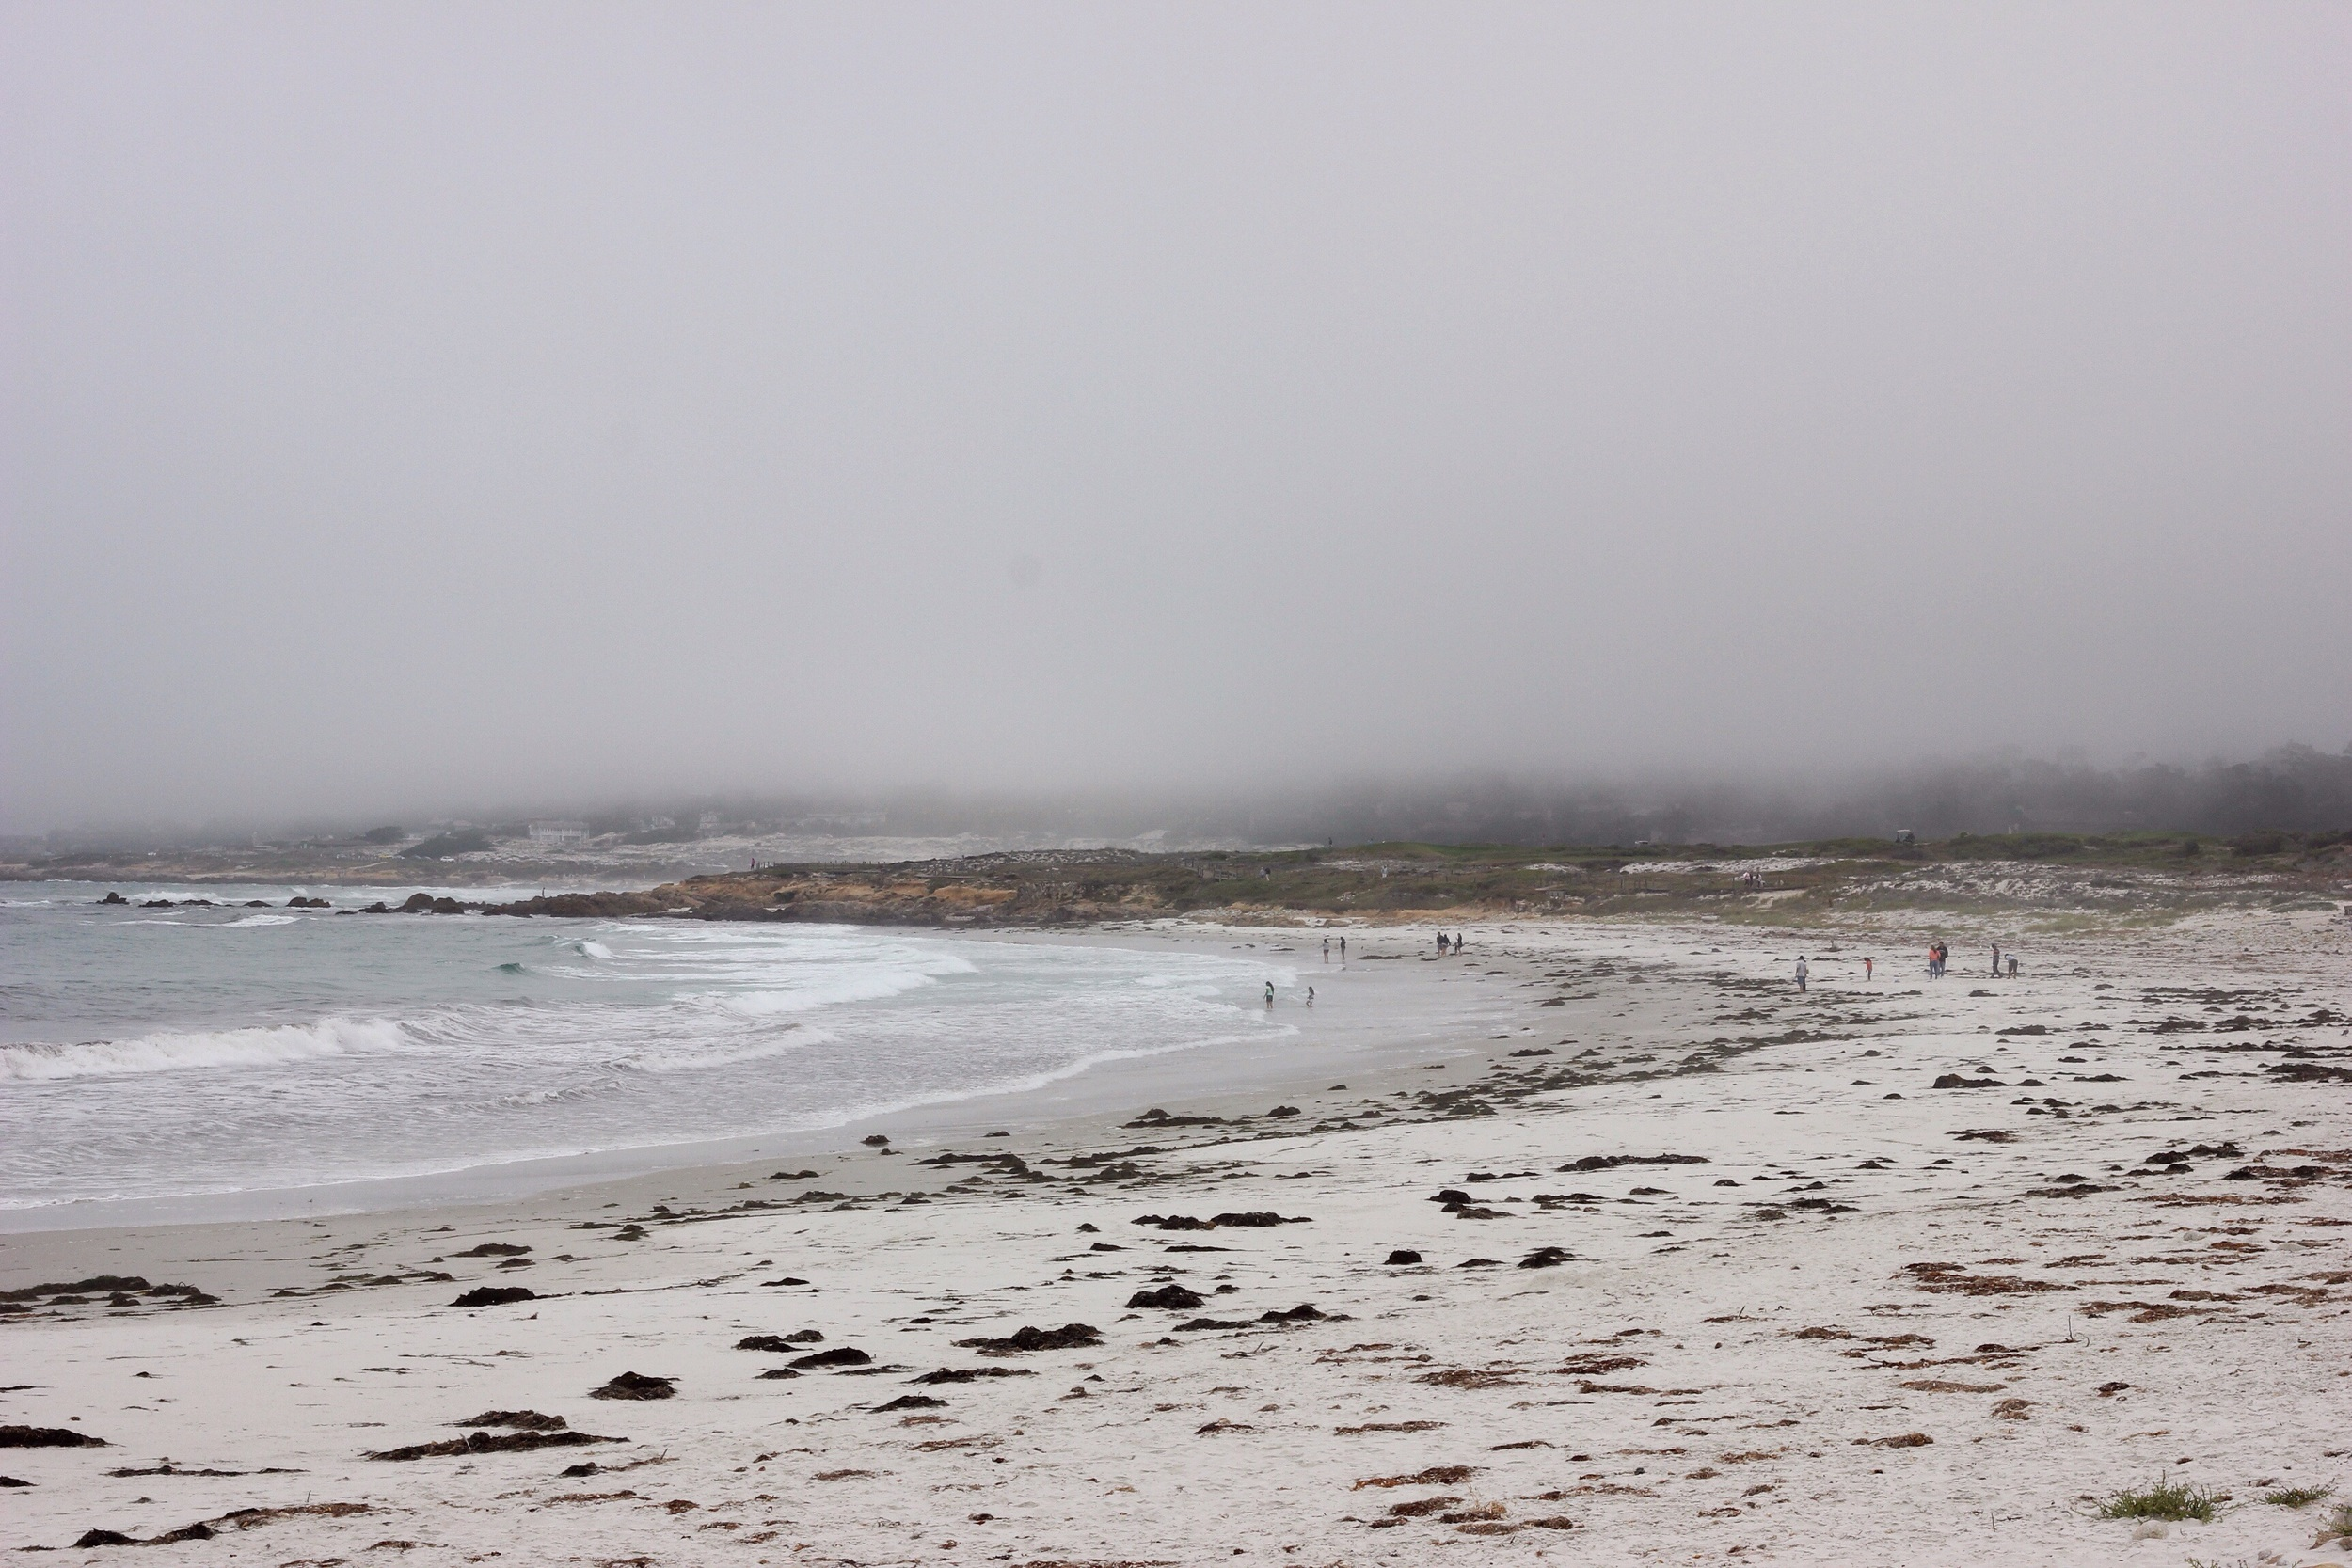 Fog covering the coast.